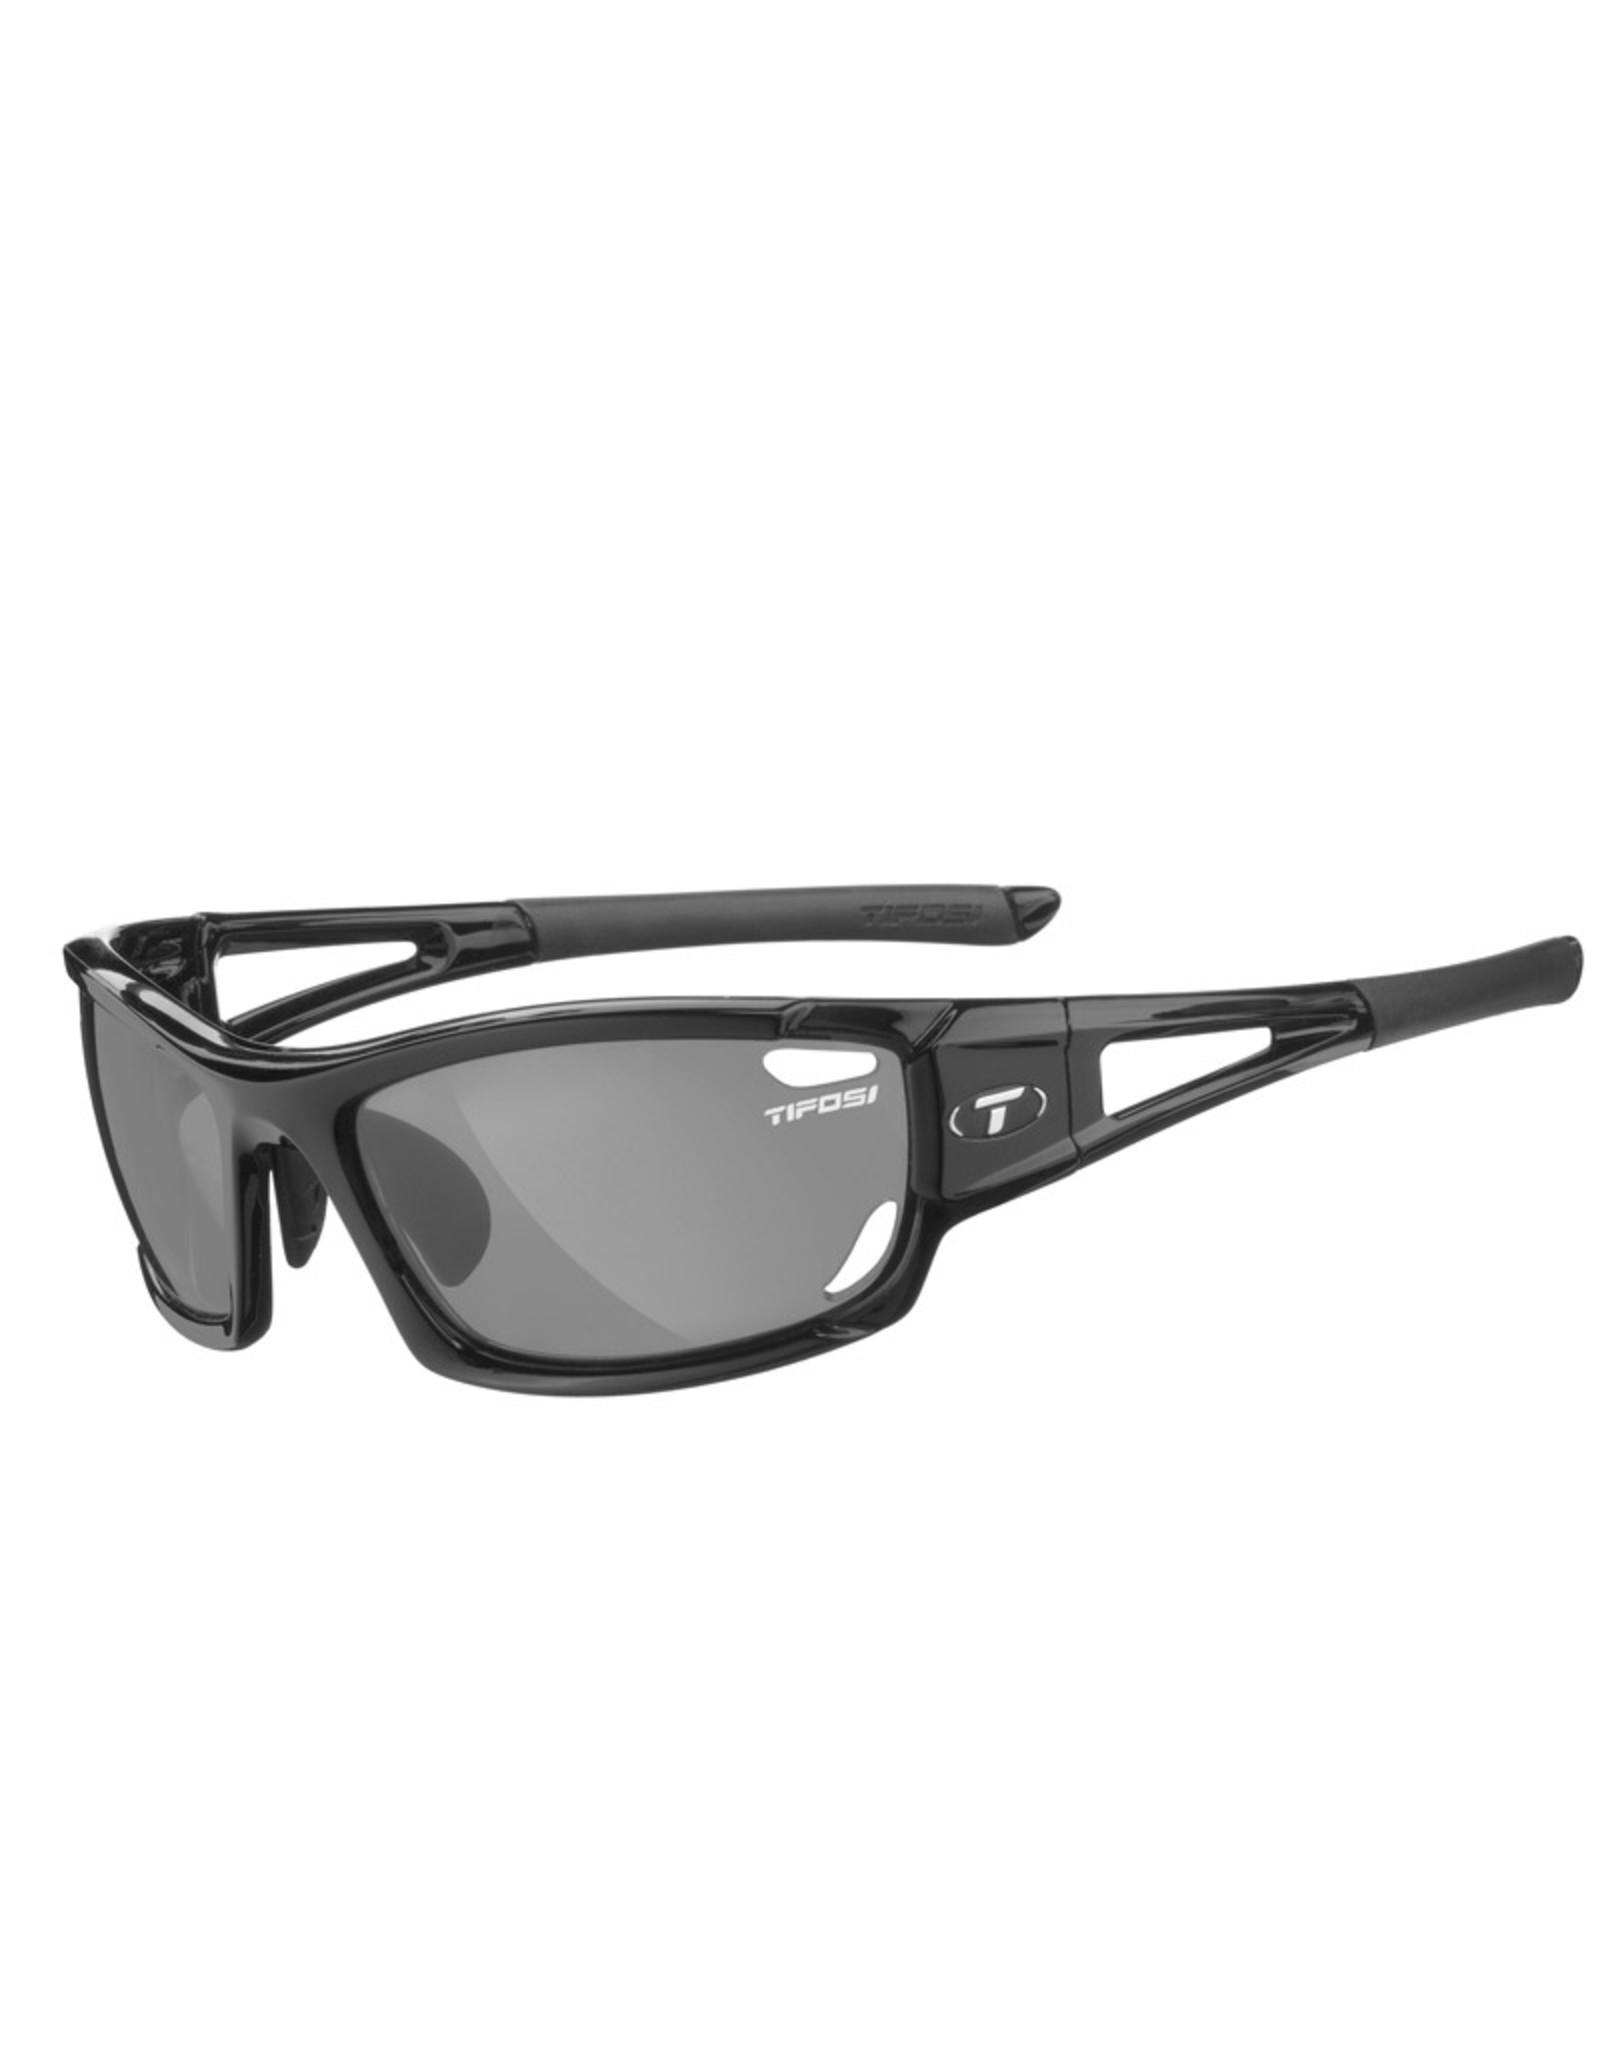 TIFOSI OPTICS DOLOMITE 2.0